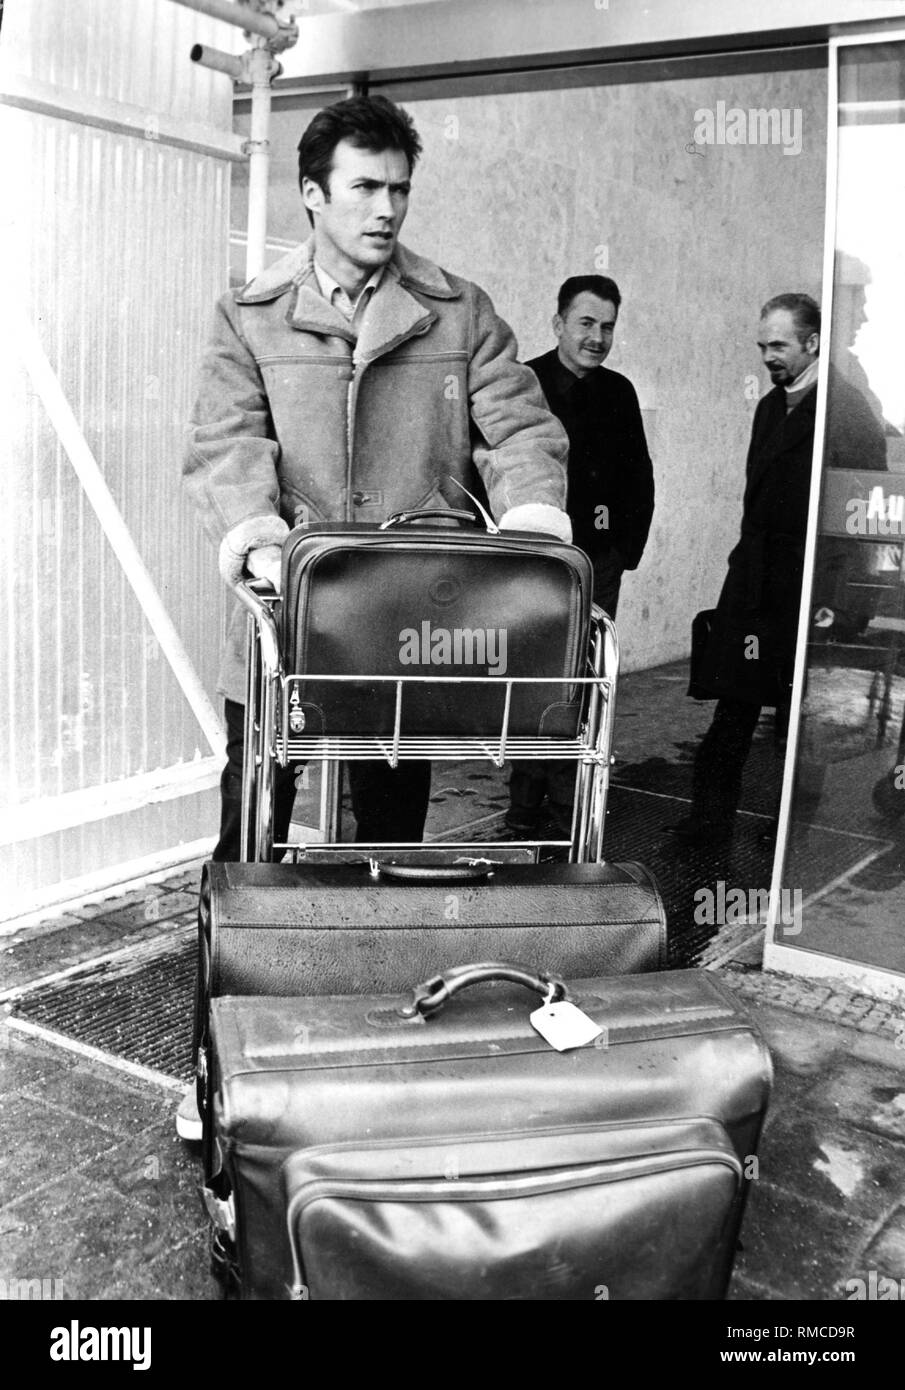 Clint Eastwood at the Munich-Riem Airport. - Stock Image